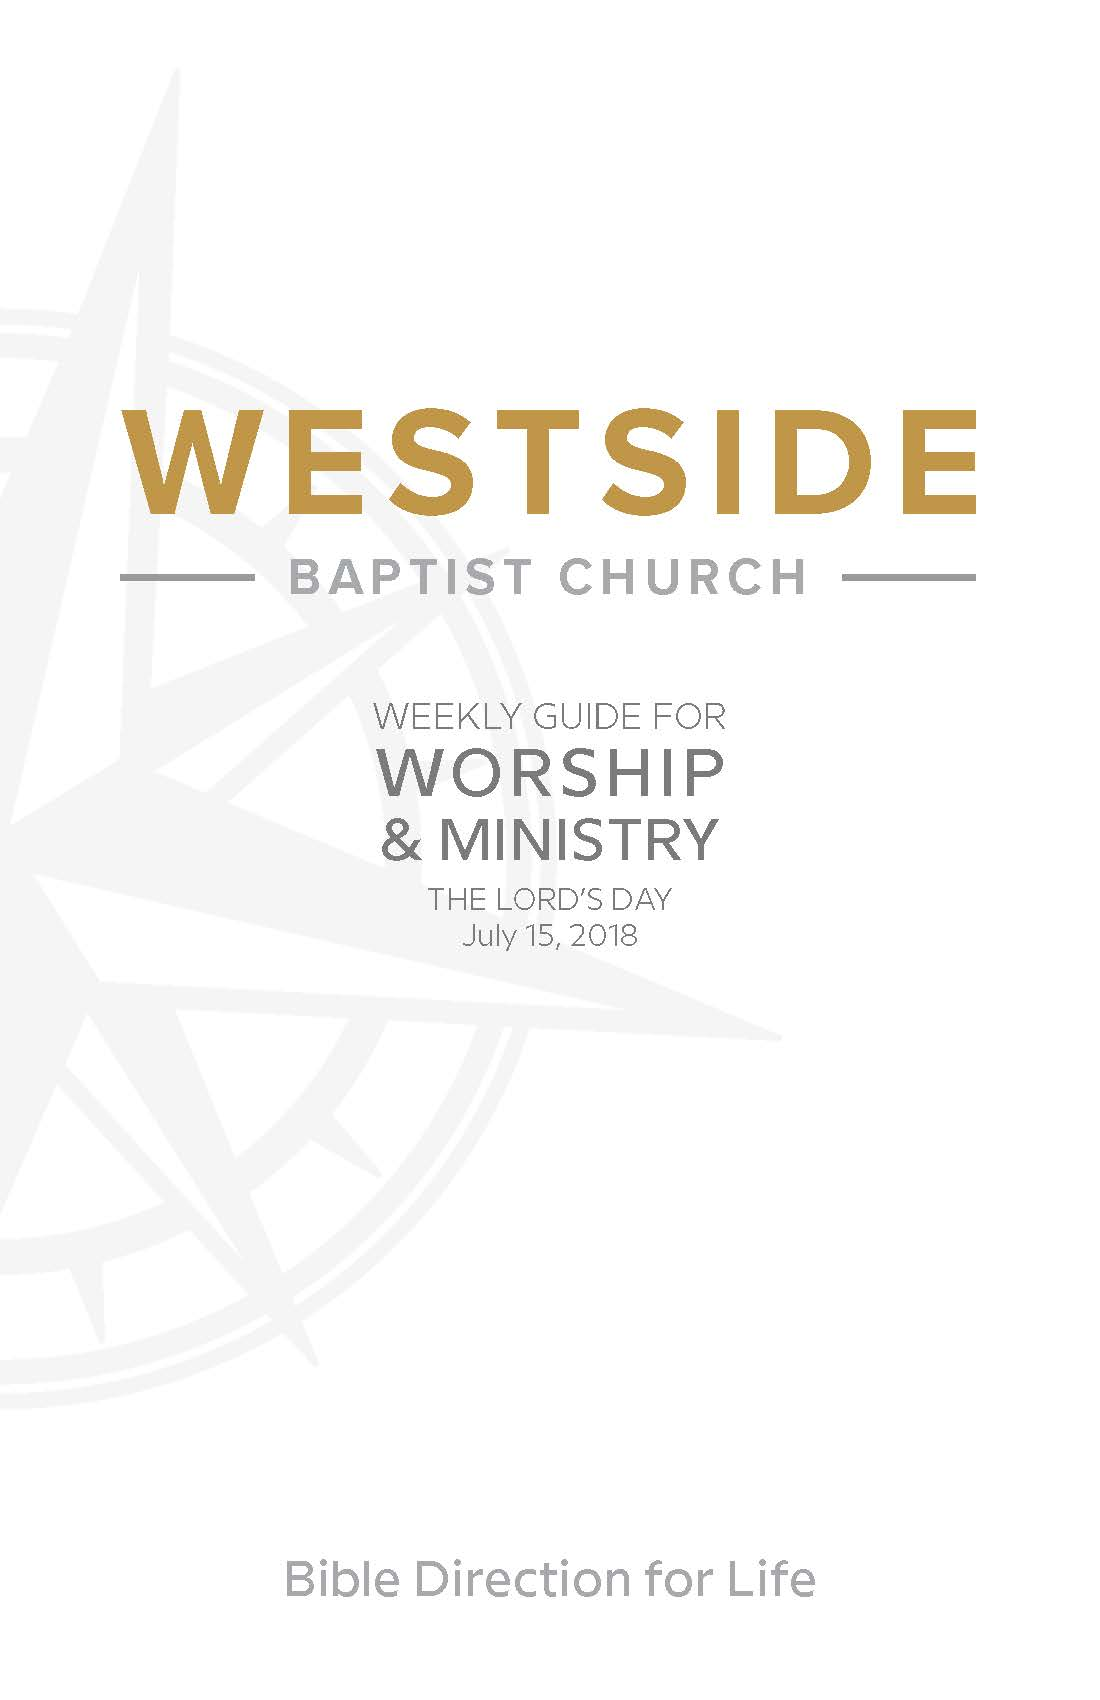 Weekly Guide for Worship and Ministry—July 15